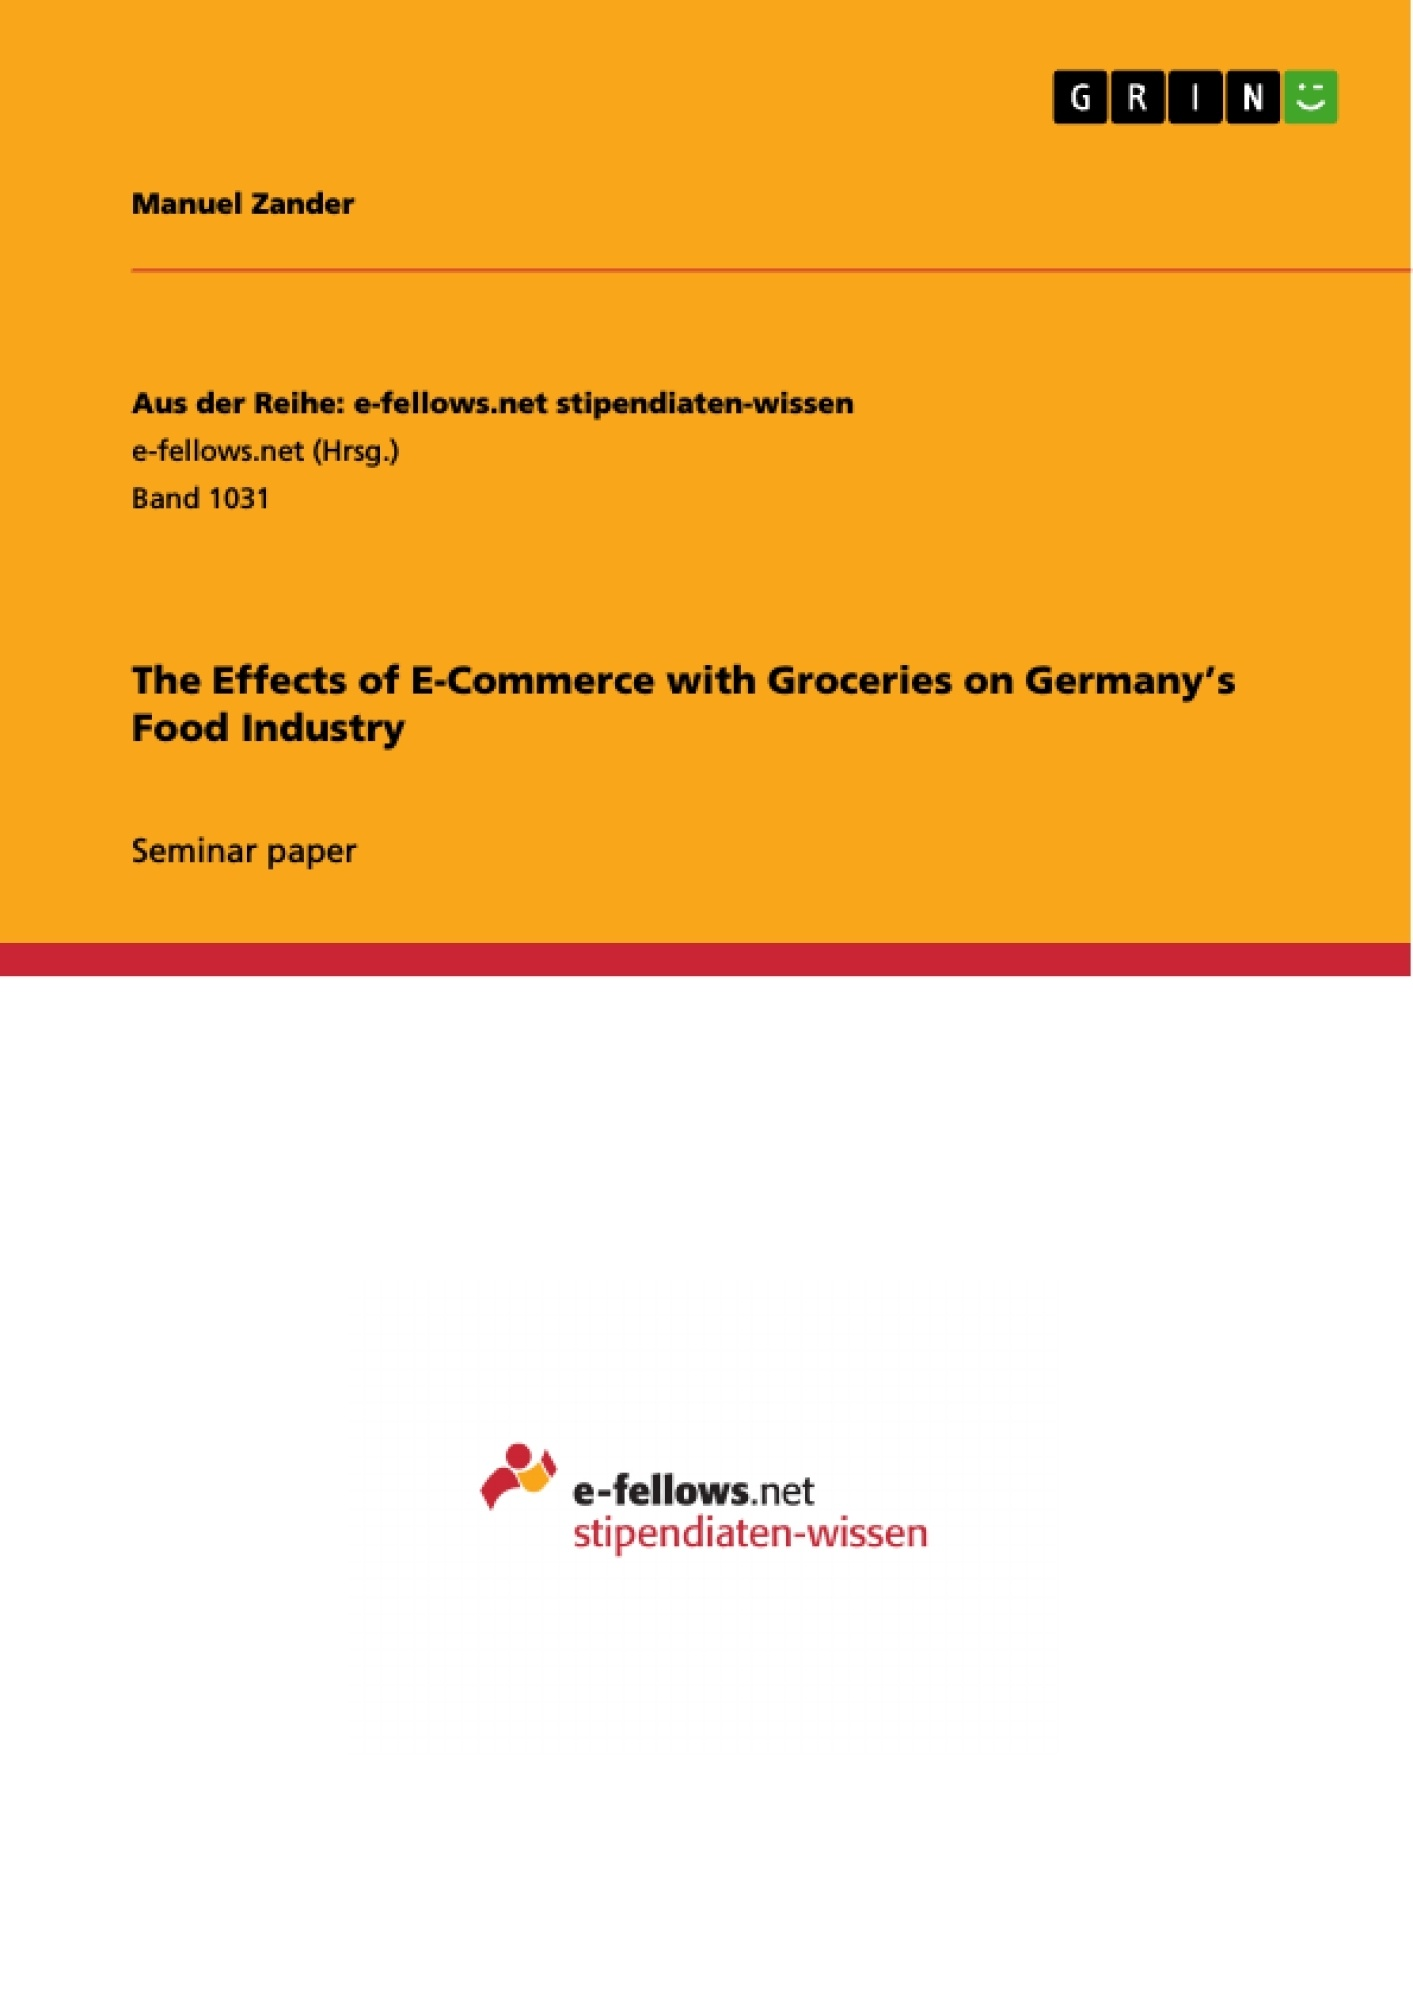 Title: The Effects of E-Commerce with Groceries on Germany's Food Industry